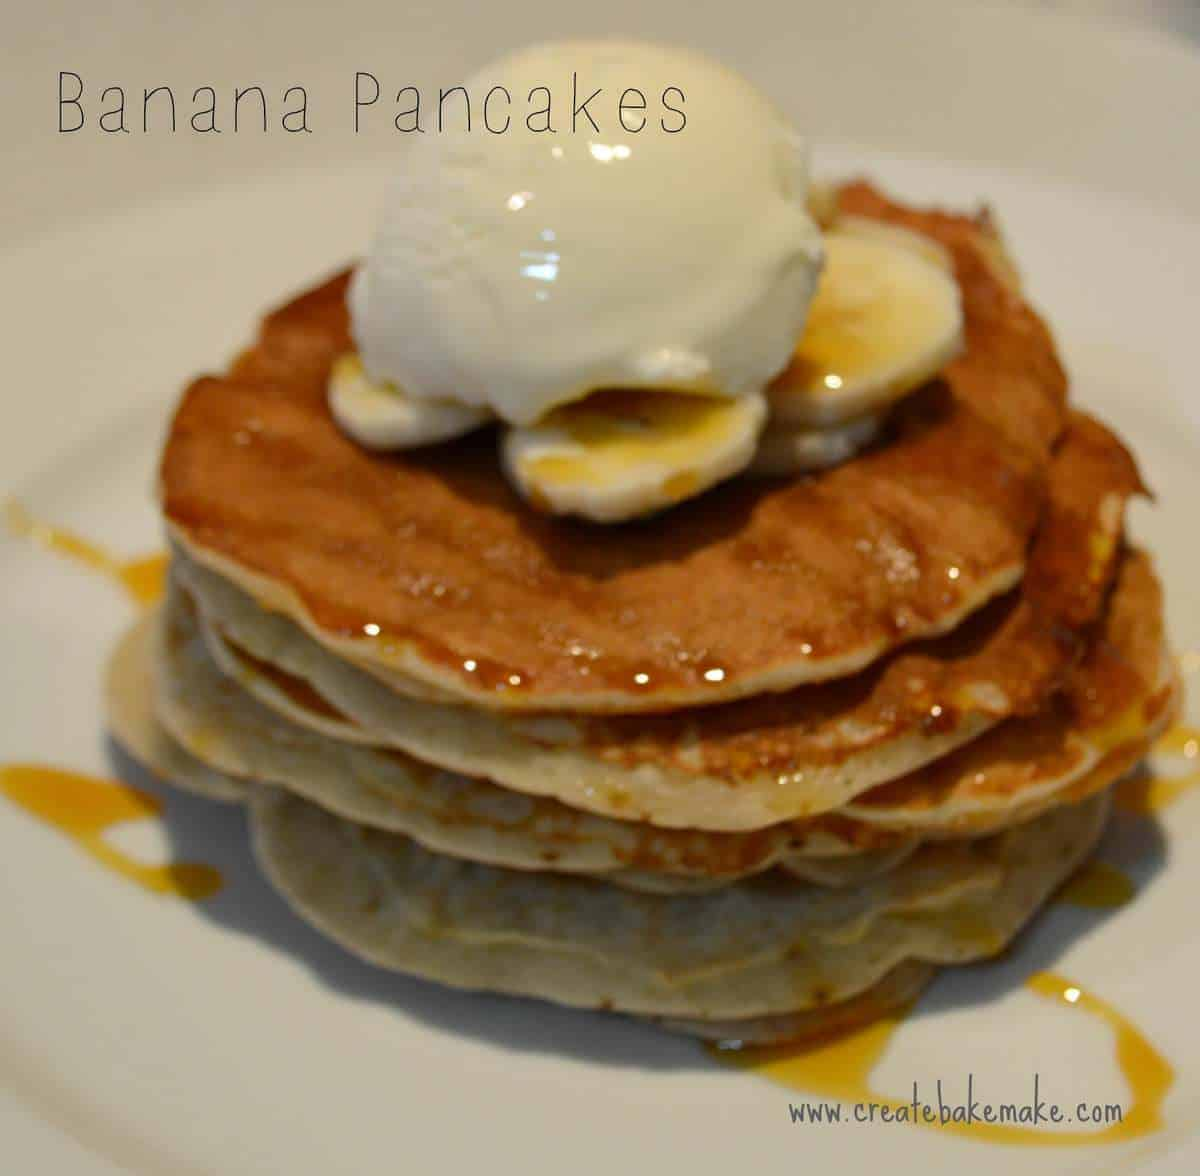 Pancake Tuesday - Yummy Banana Pancakes - Create Bake Make